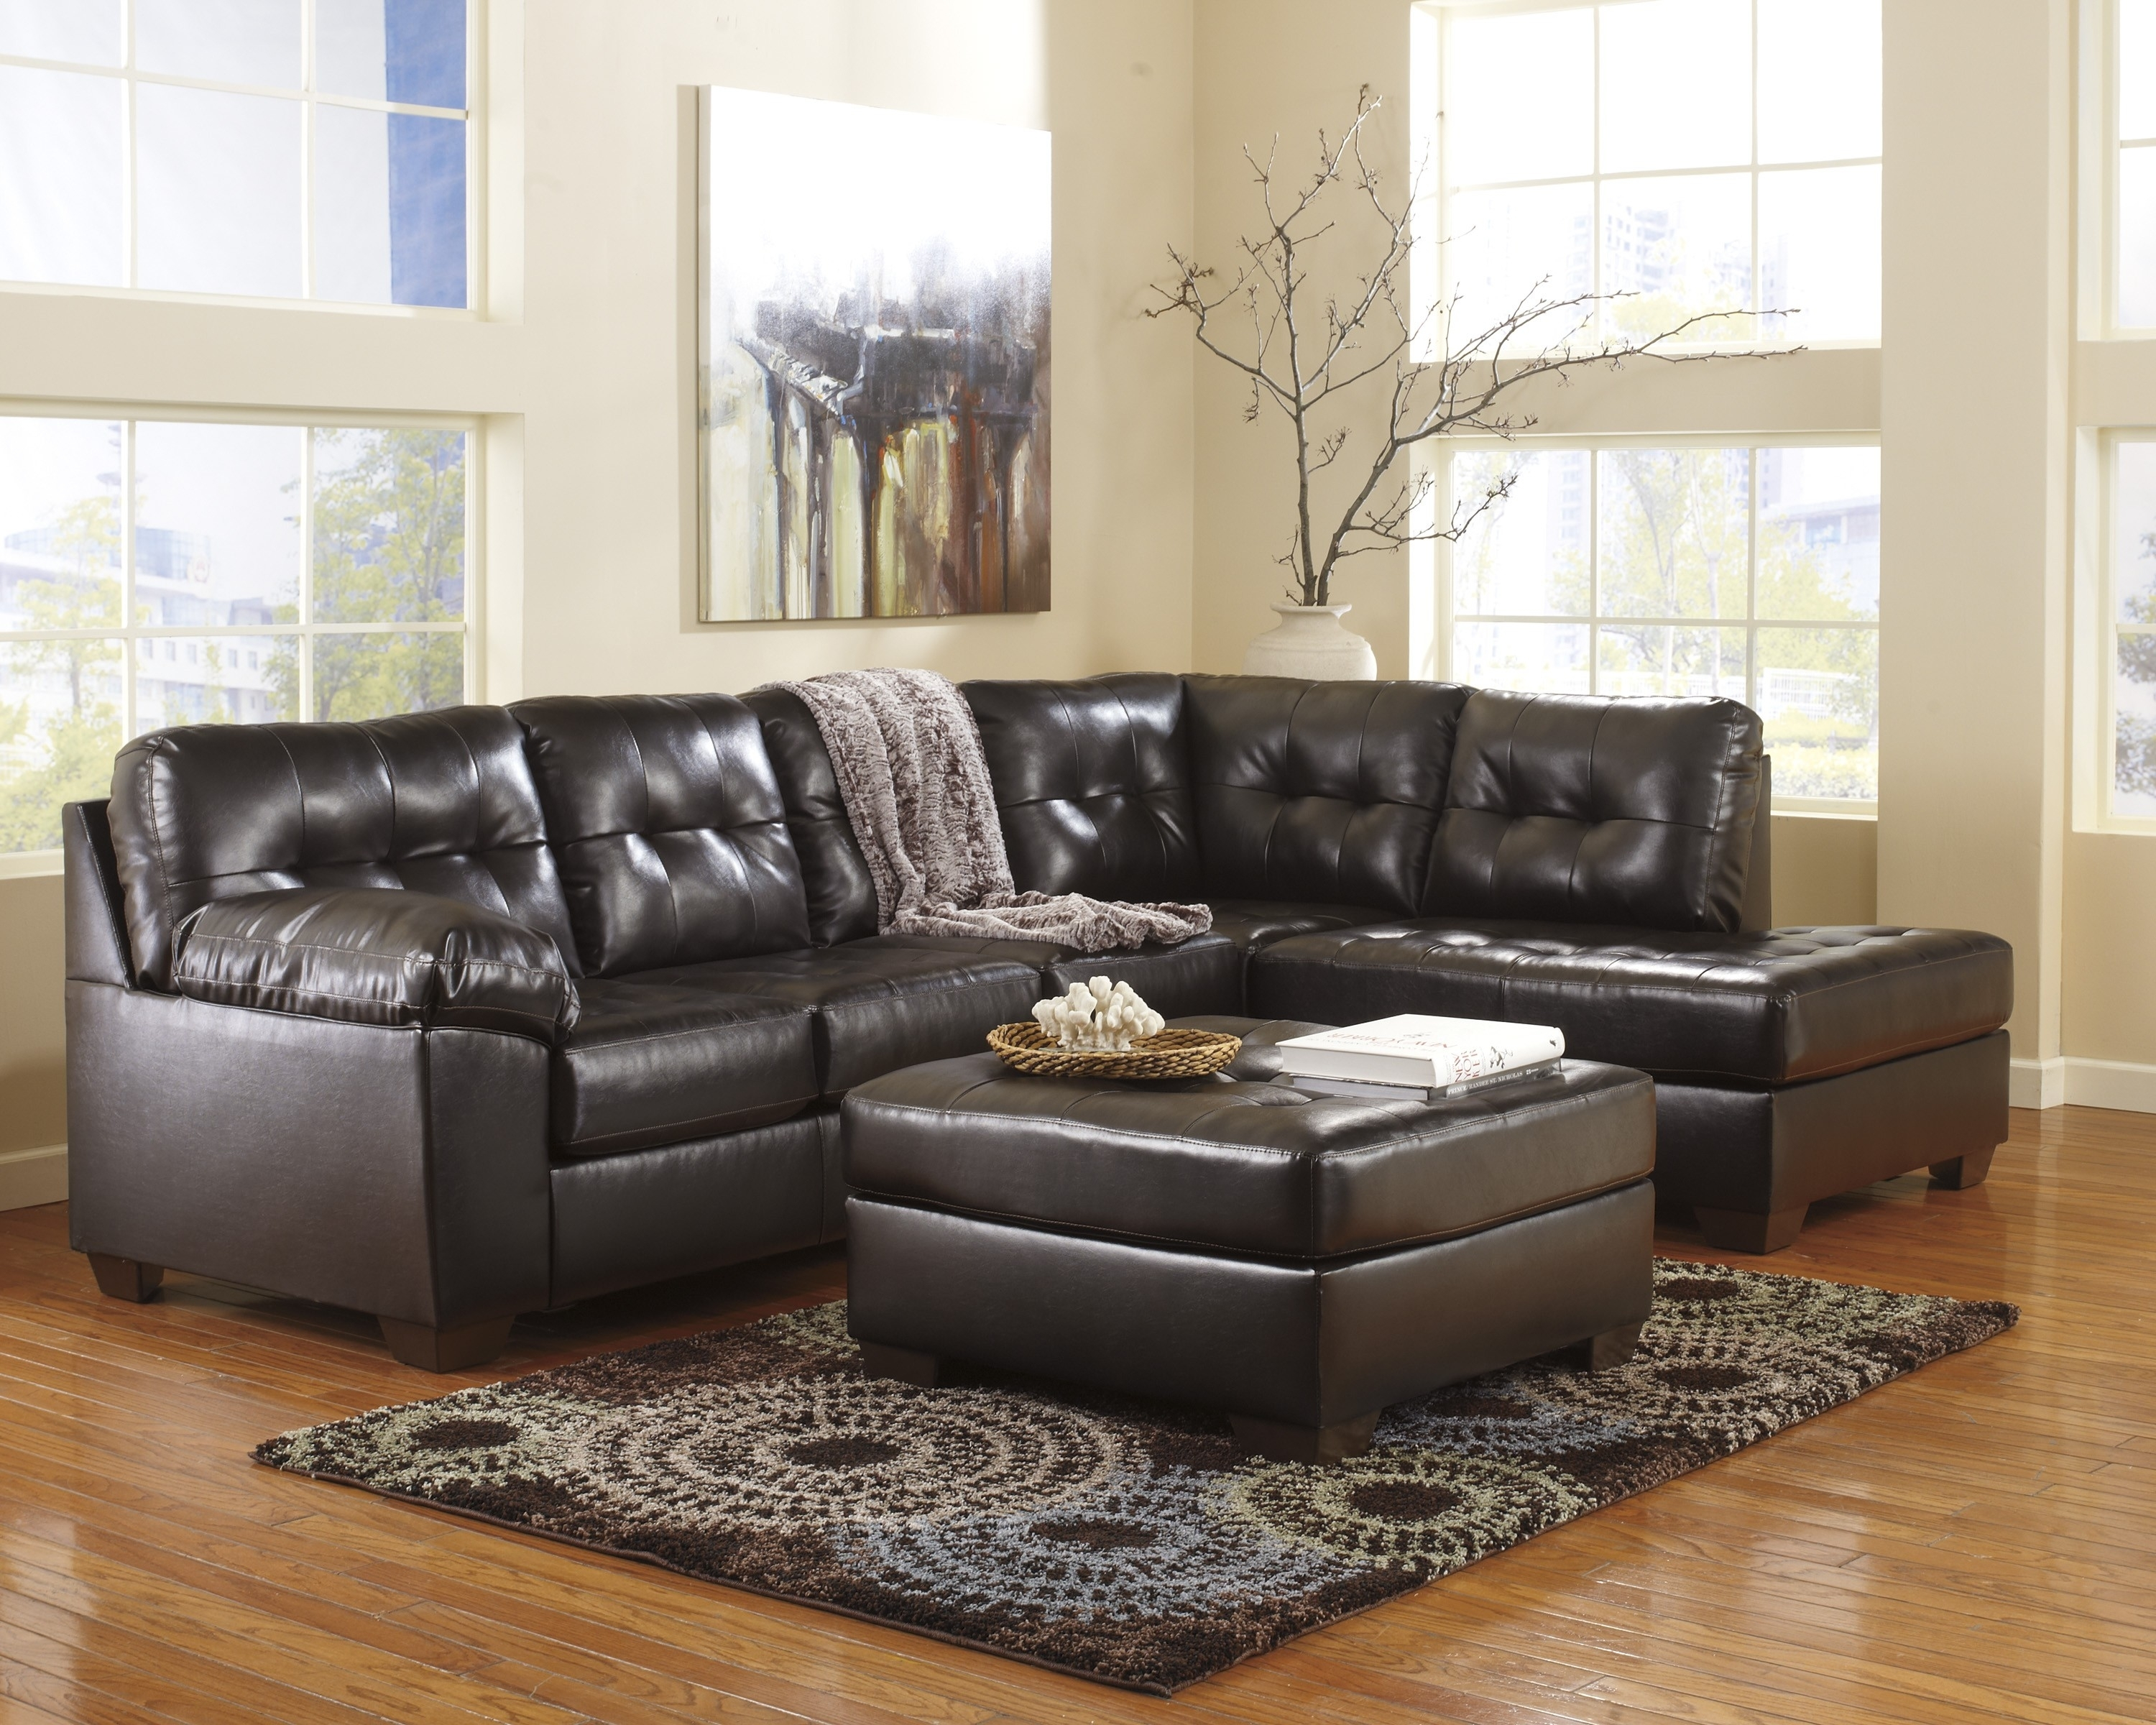 Chocolate Sectional Sofa Set With Chaise | Baci Living Room within Norfolk Chocolate 6 Piece Sectionals With Raf Chaise (Image 5 of 30)